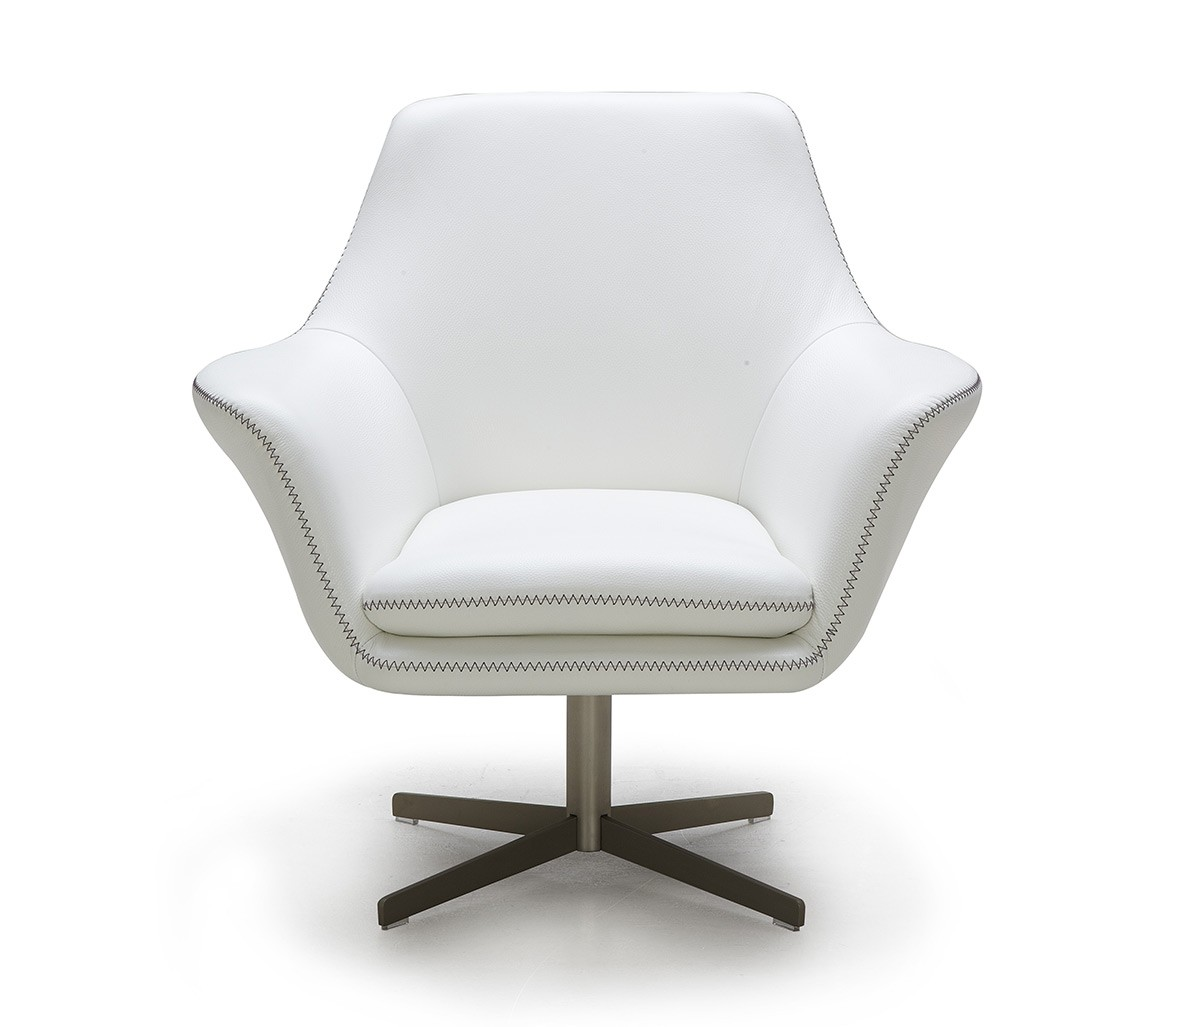 Lounge Chaises And Daybeds, Stylish Accessories. LIMITED TIME OFFER: FREE  In Home Premium Delivery. Modern White Leather Swivel Lounge Chair